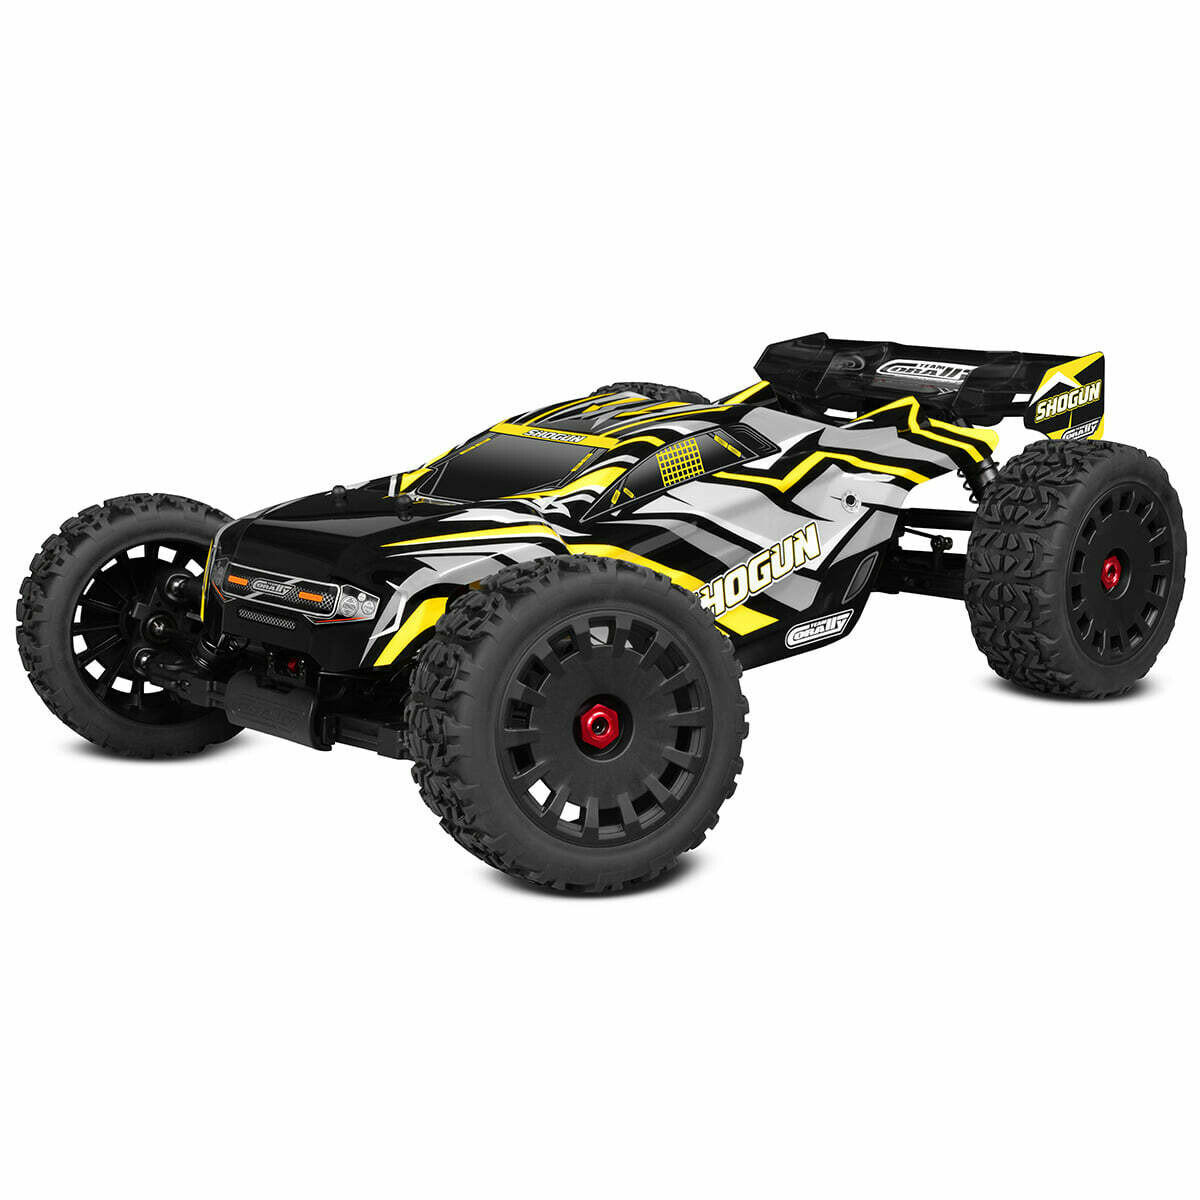 Corally 1/8 Shogun XP 4WD Truggy 6S Brushless RTR 2021 (No Battery or Charger)